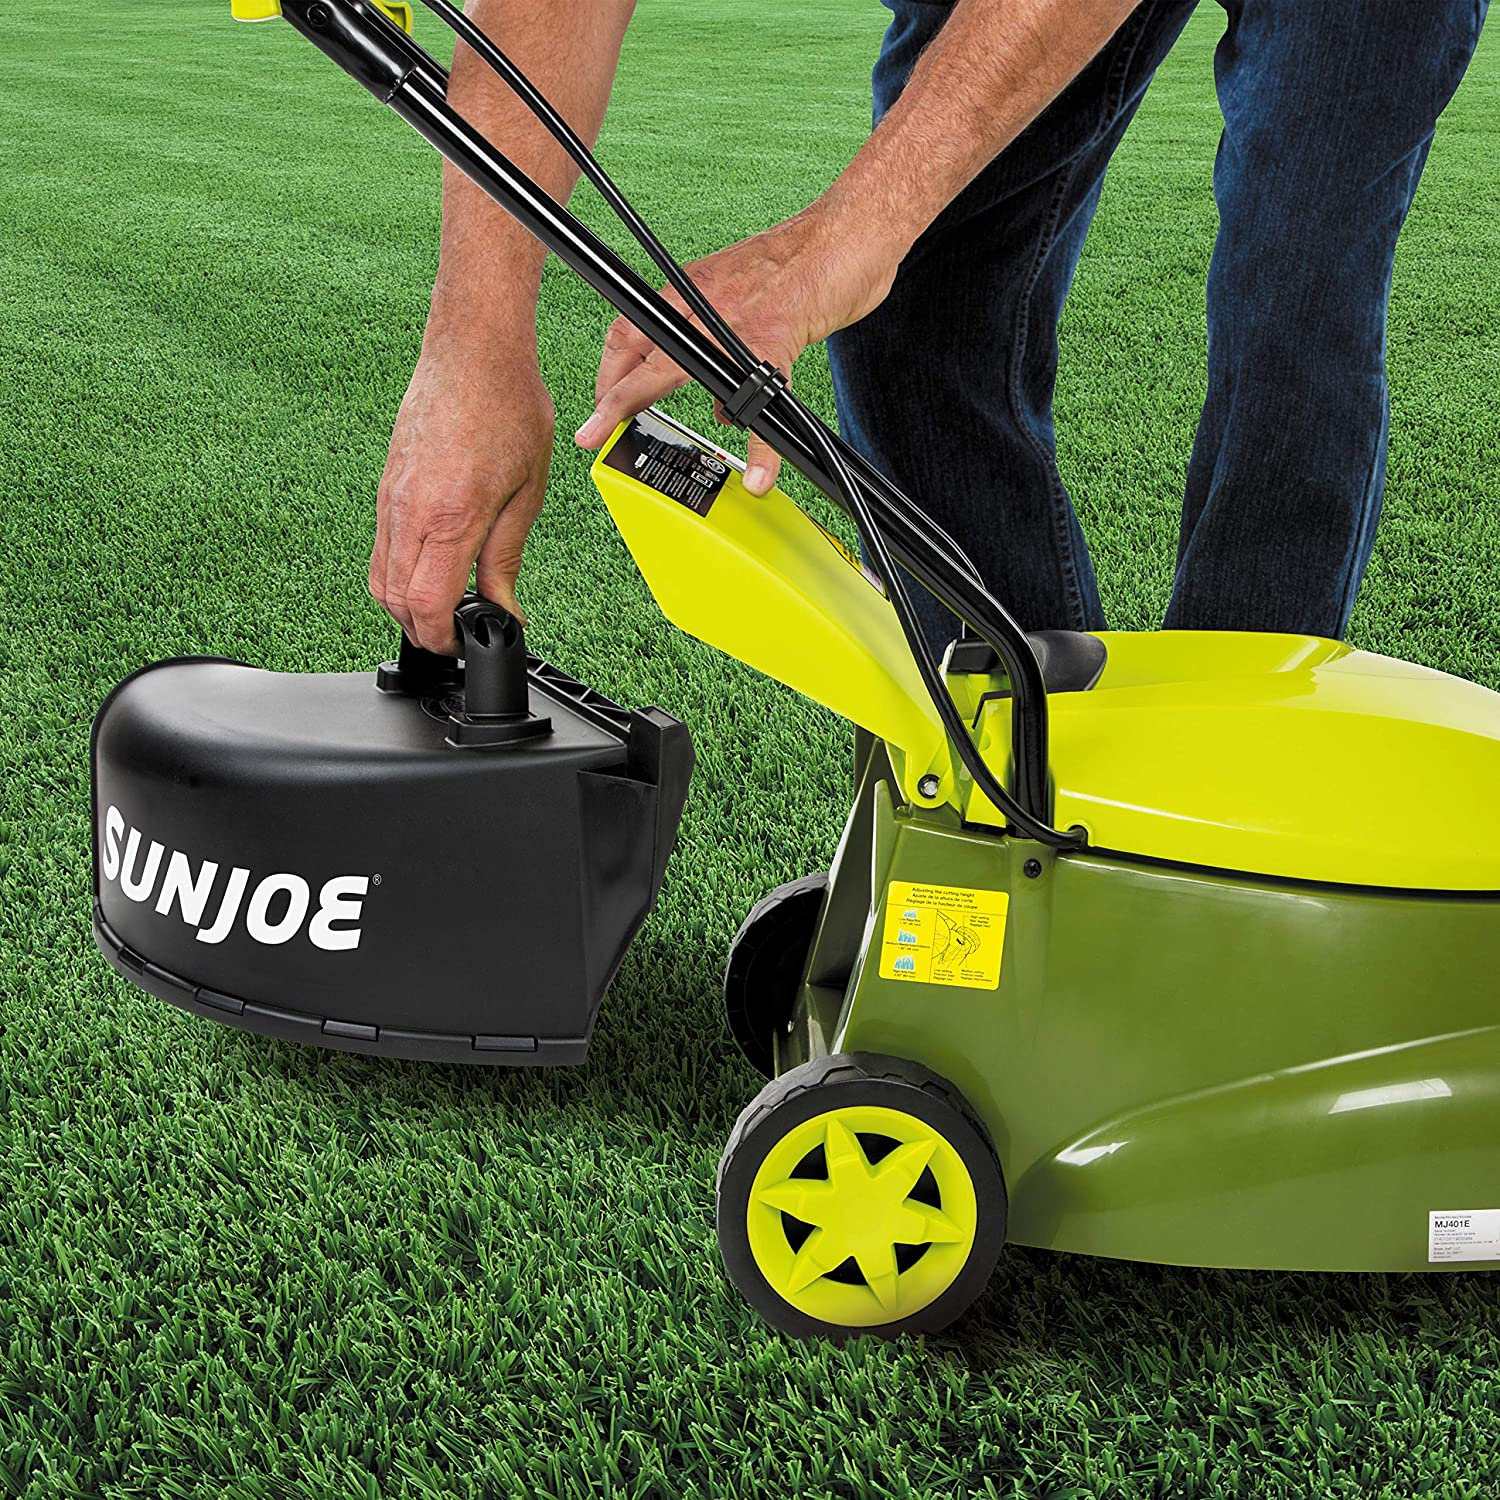 Sun Joe MJ401E-PRO best Electric Lawn Mower